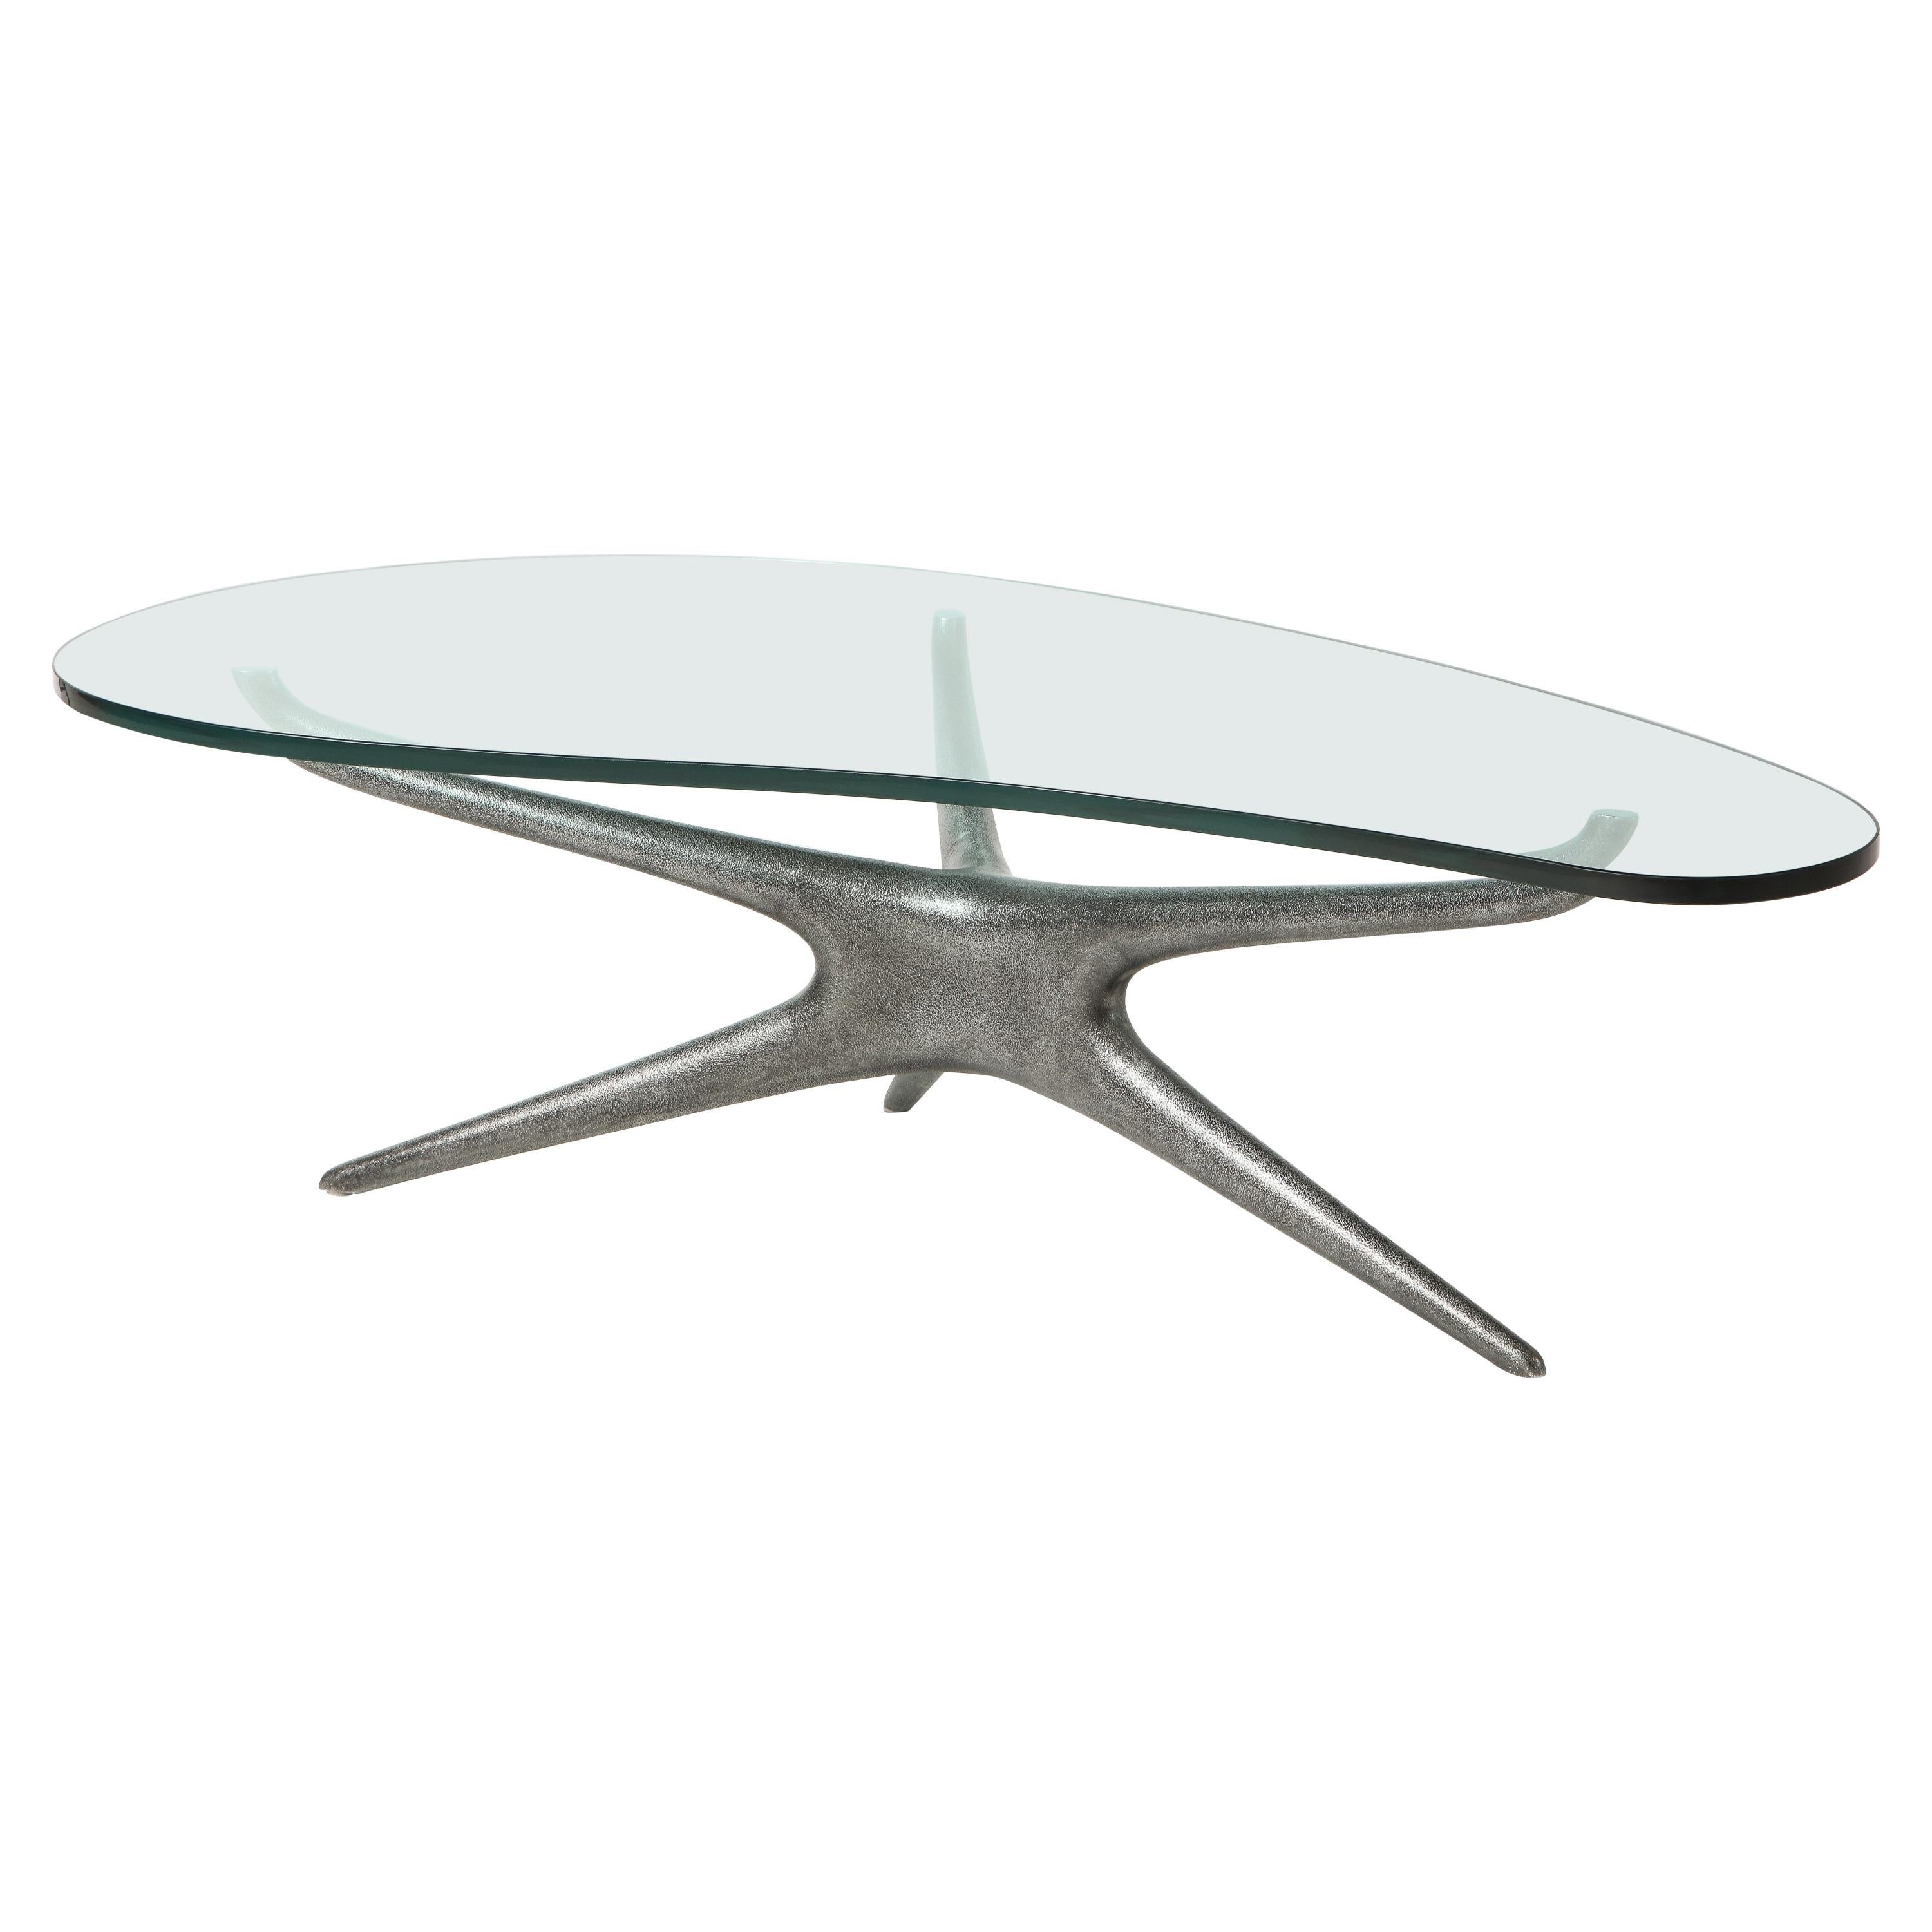 Vladimir Kagan Cast Aluminum 412 Sculpted Coffee Table with Clear Glass Top